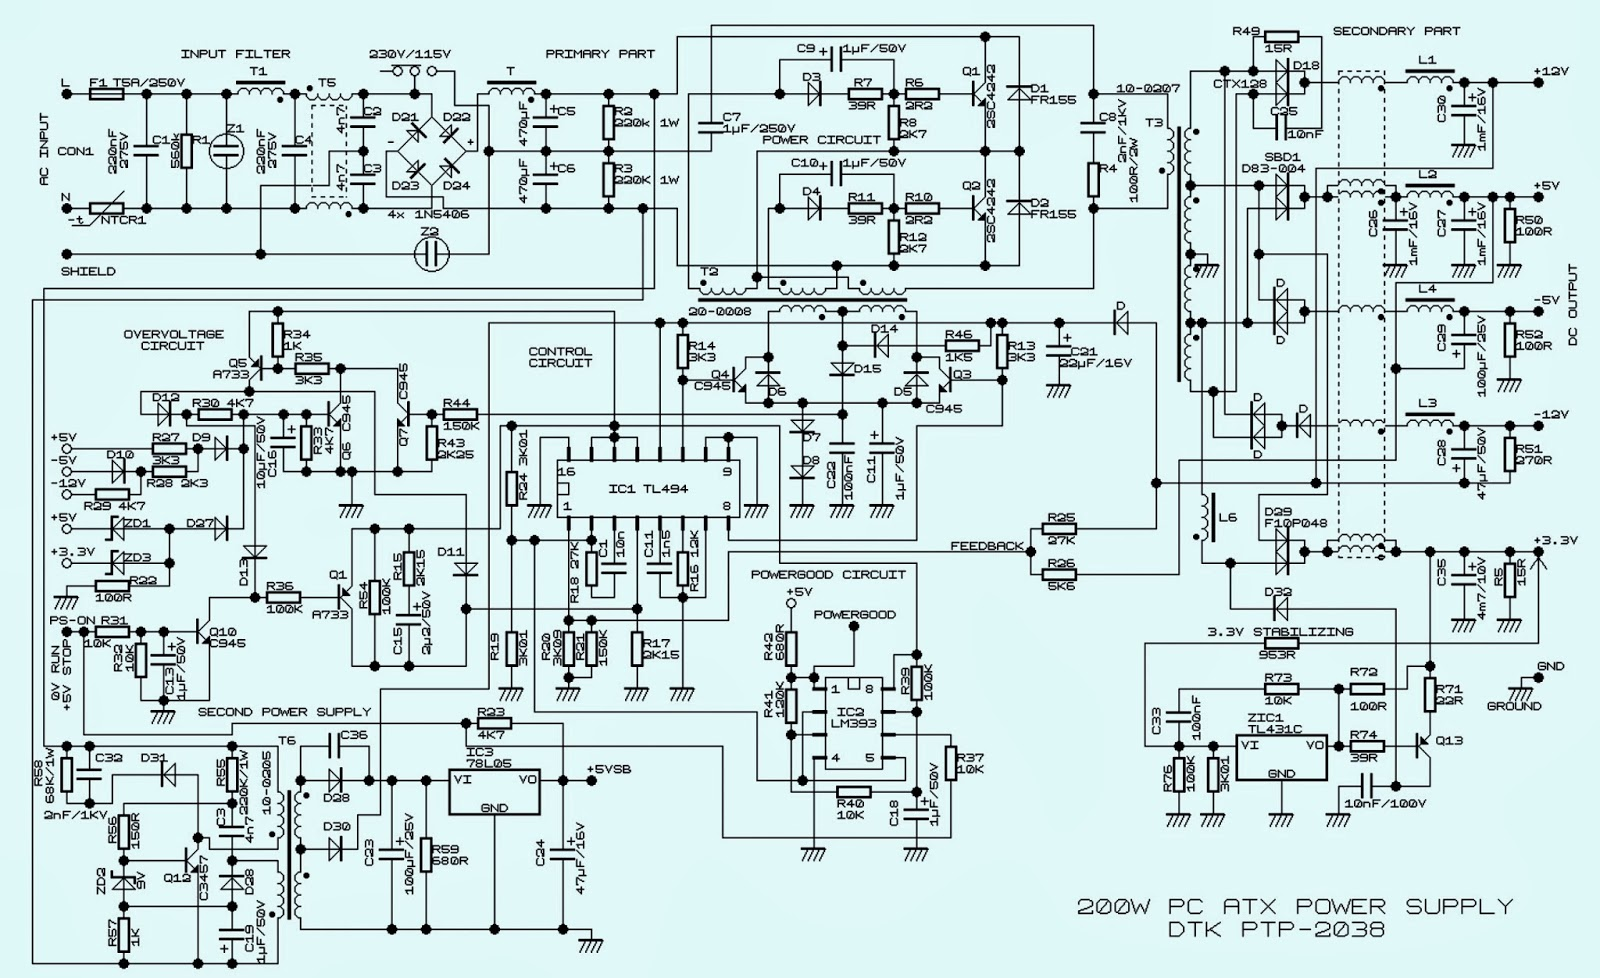 200w atx power supply - computer - schematic (circuit ... computer schematic diagram